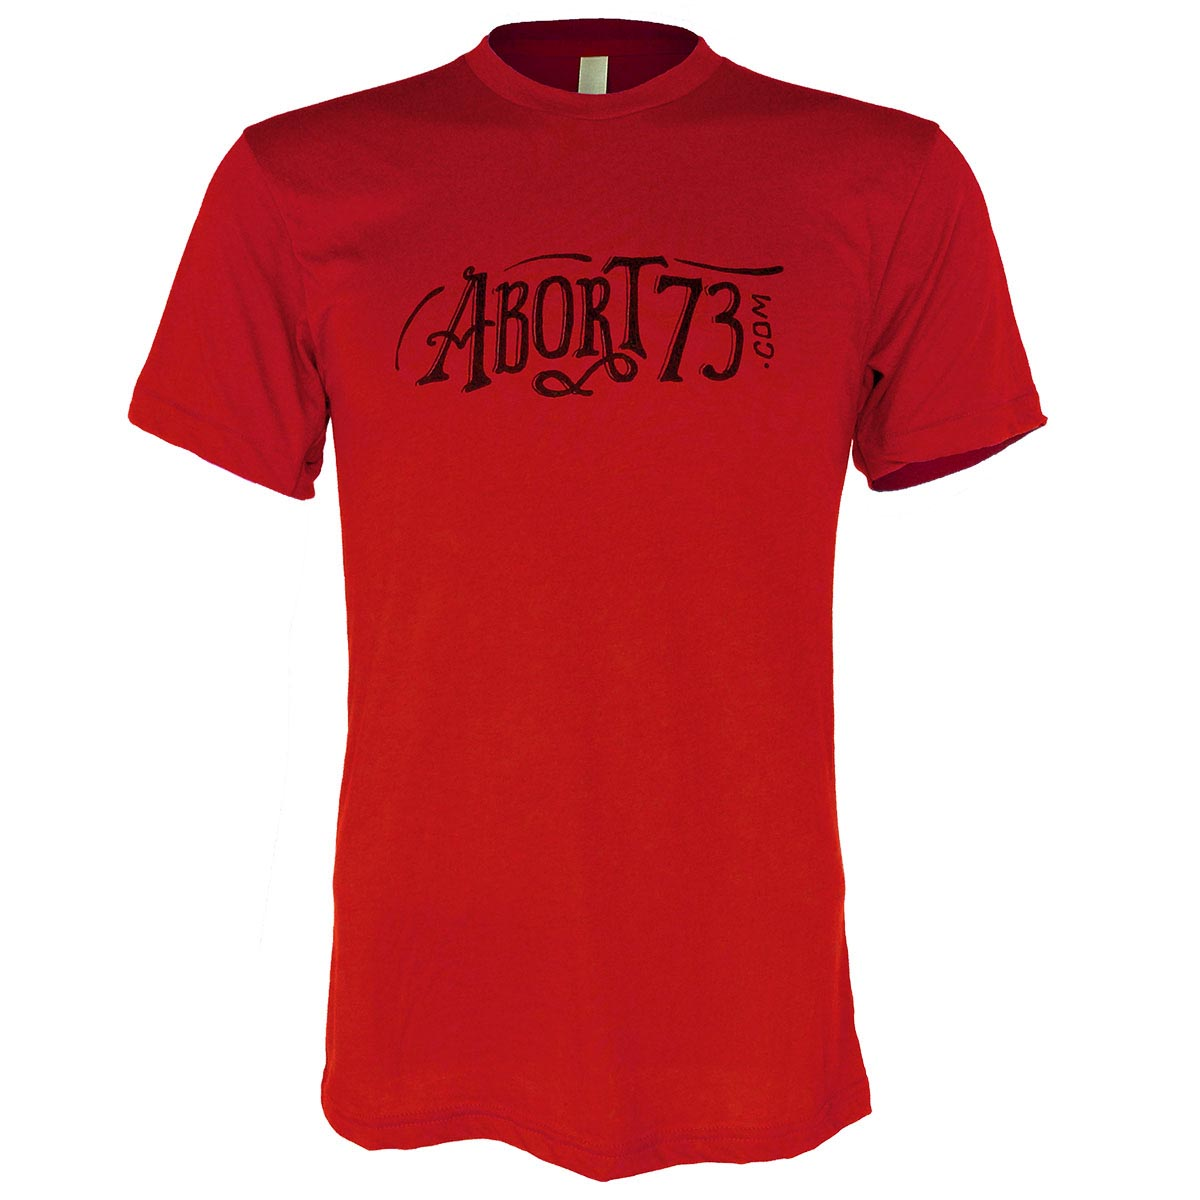 96 a Day is Ninety-Six Too Many! (Abort73 Unisex 50/50 T-shirt)